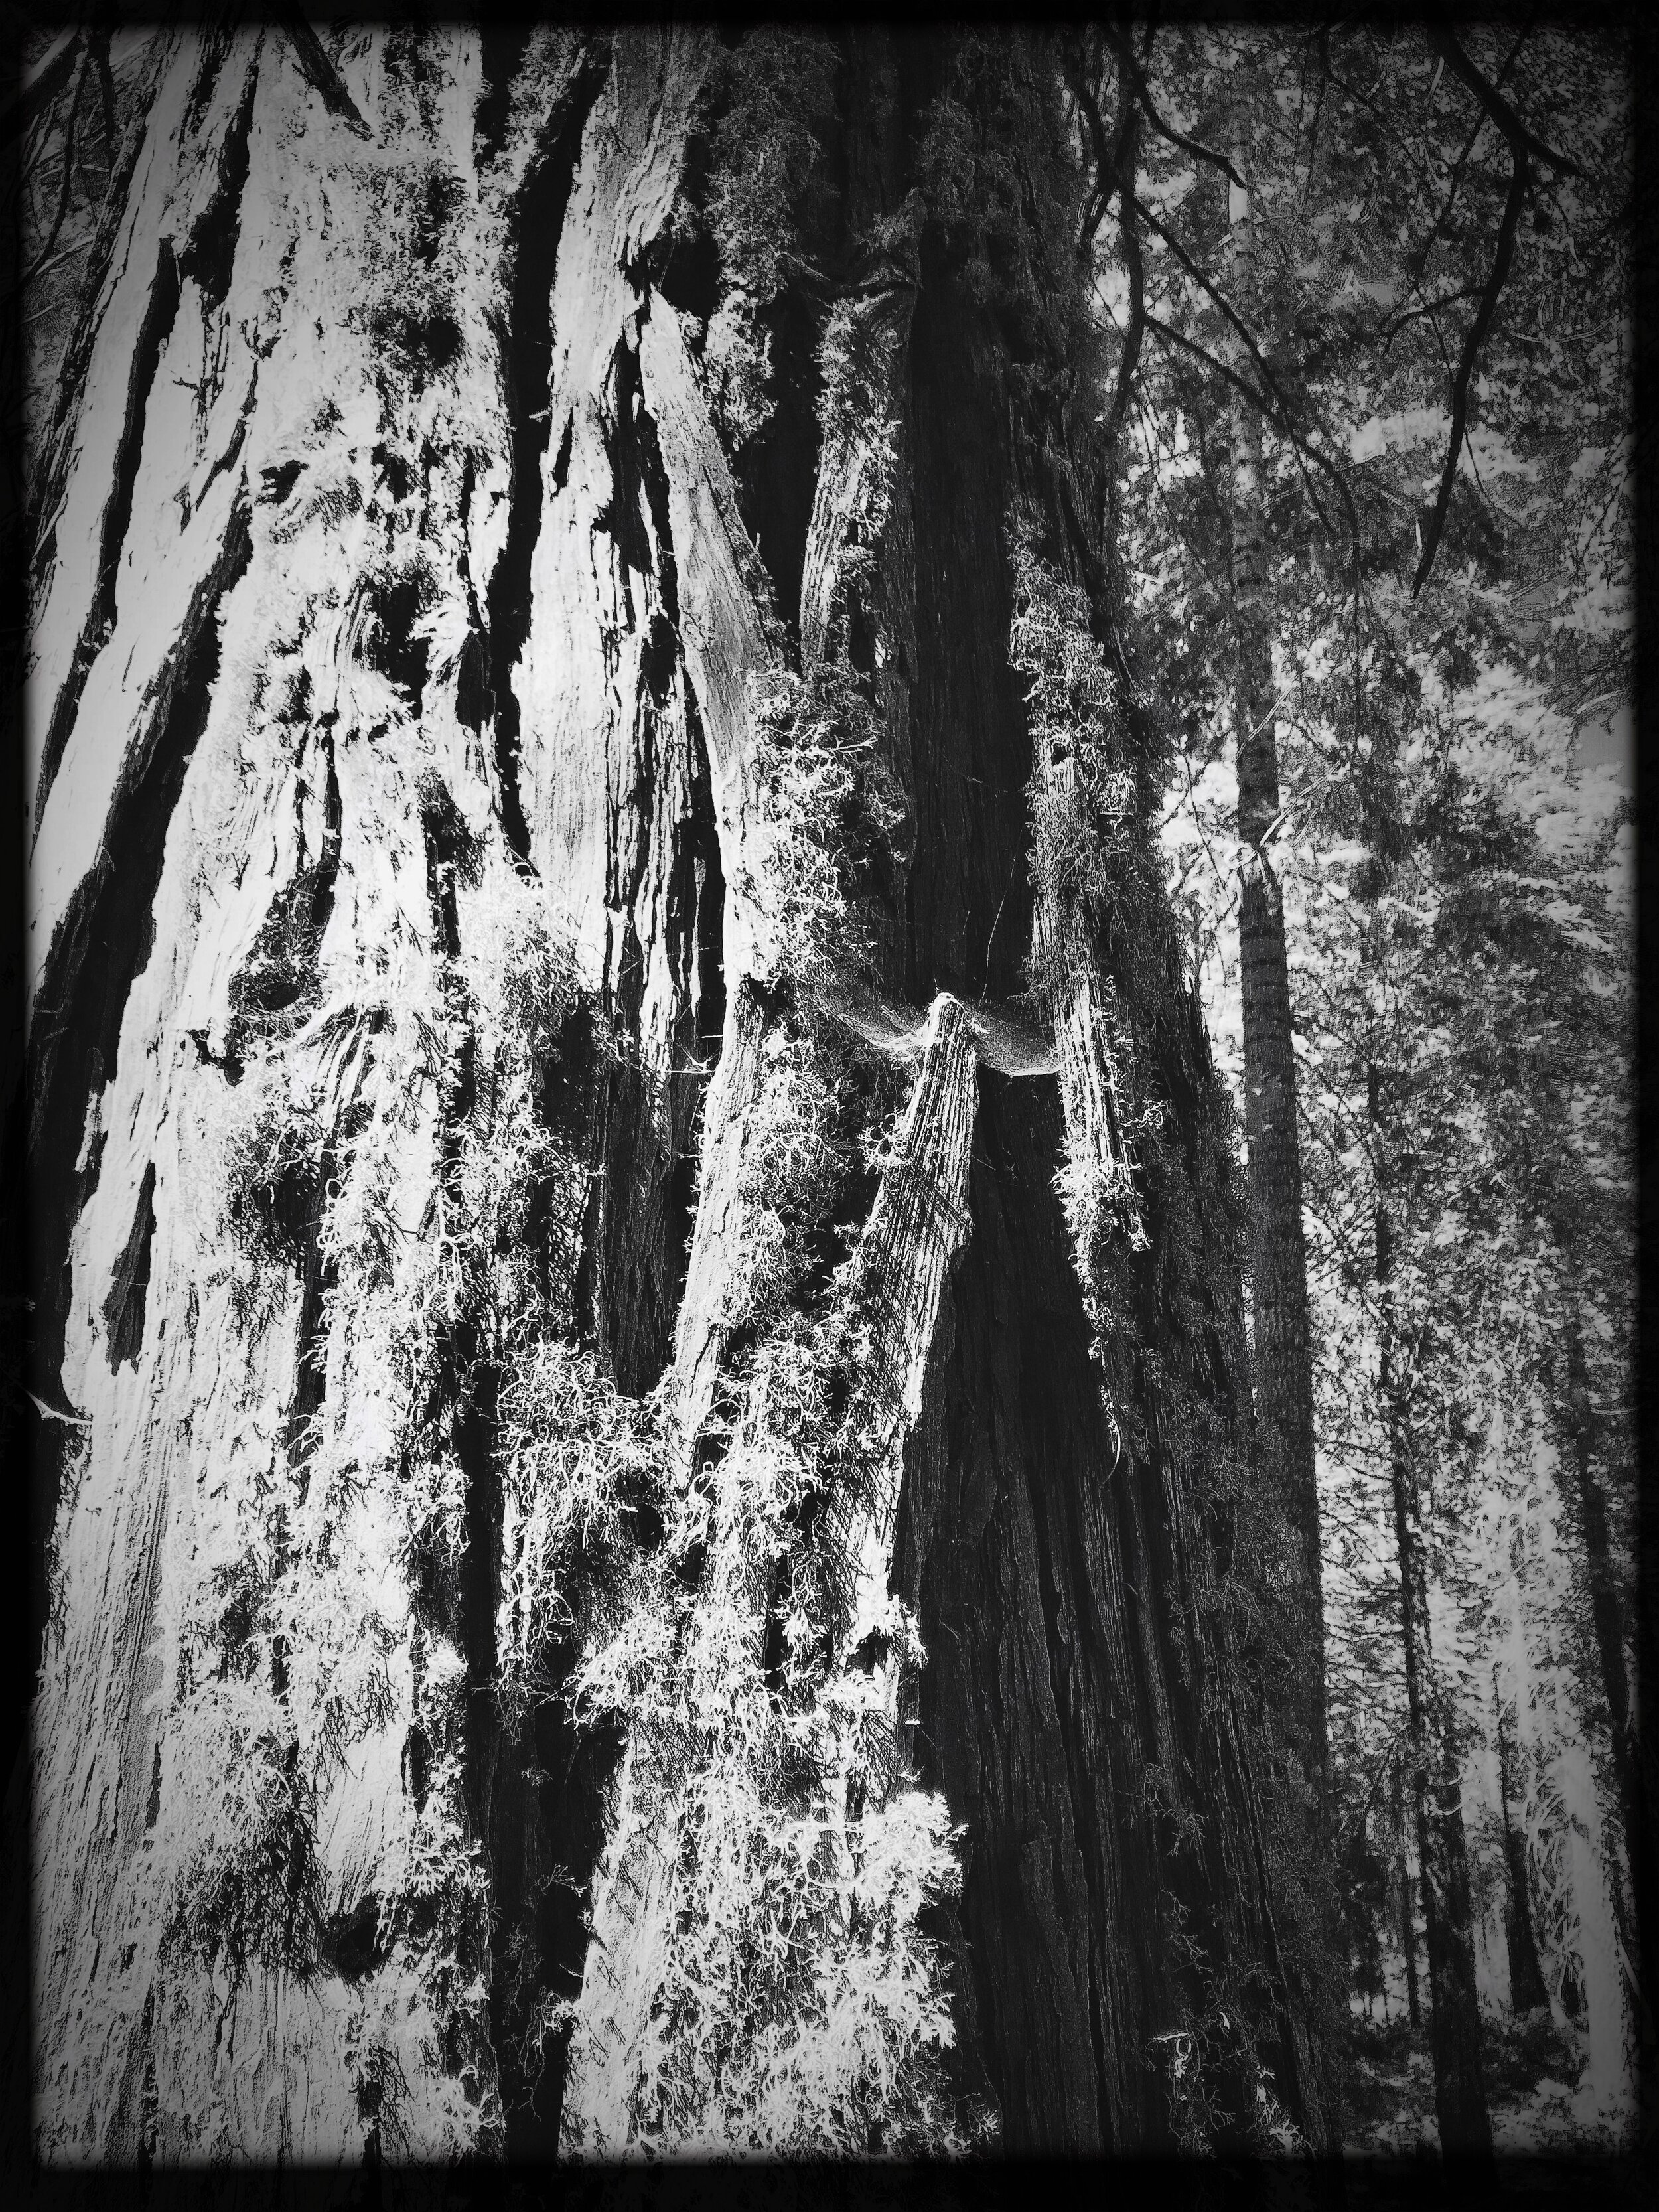 The trees are so beautiful in both black and white AND color. We were treated to seeing and hearing several rare woodpeckers pecking away.